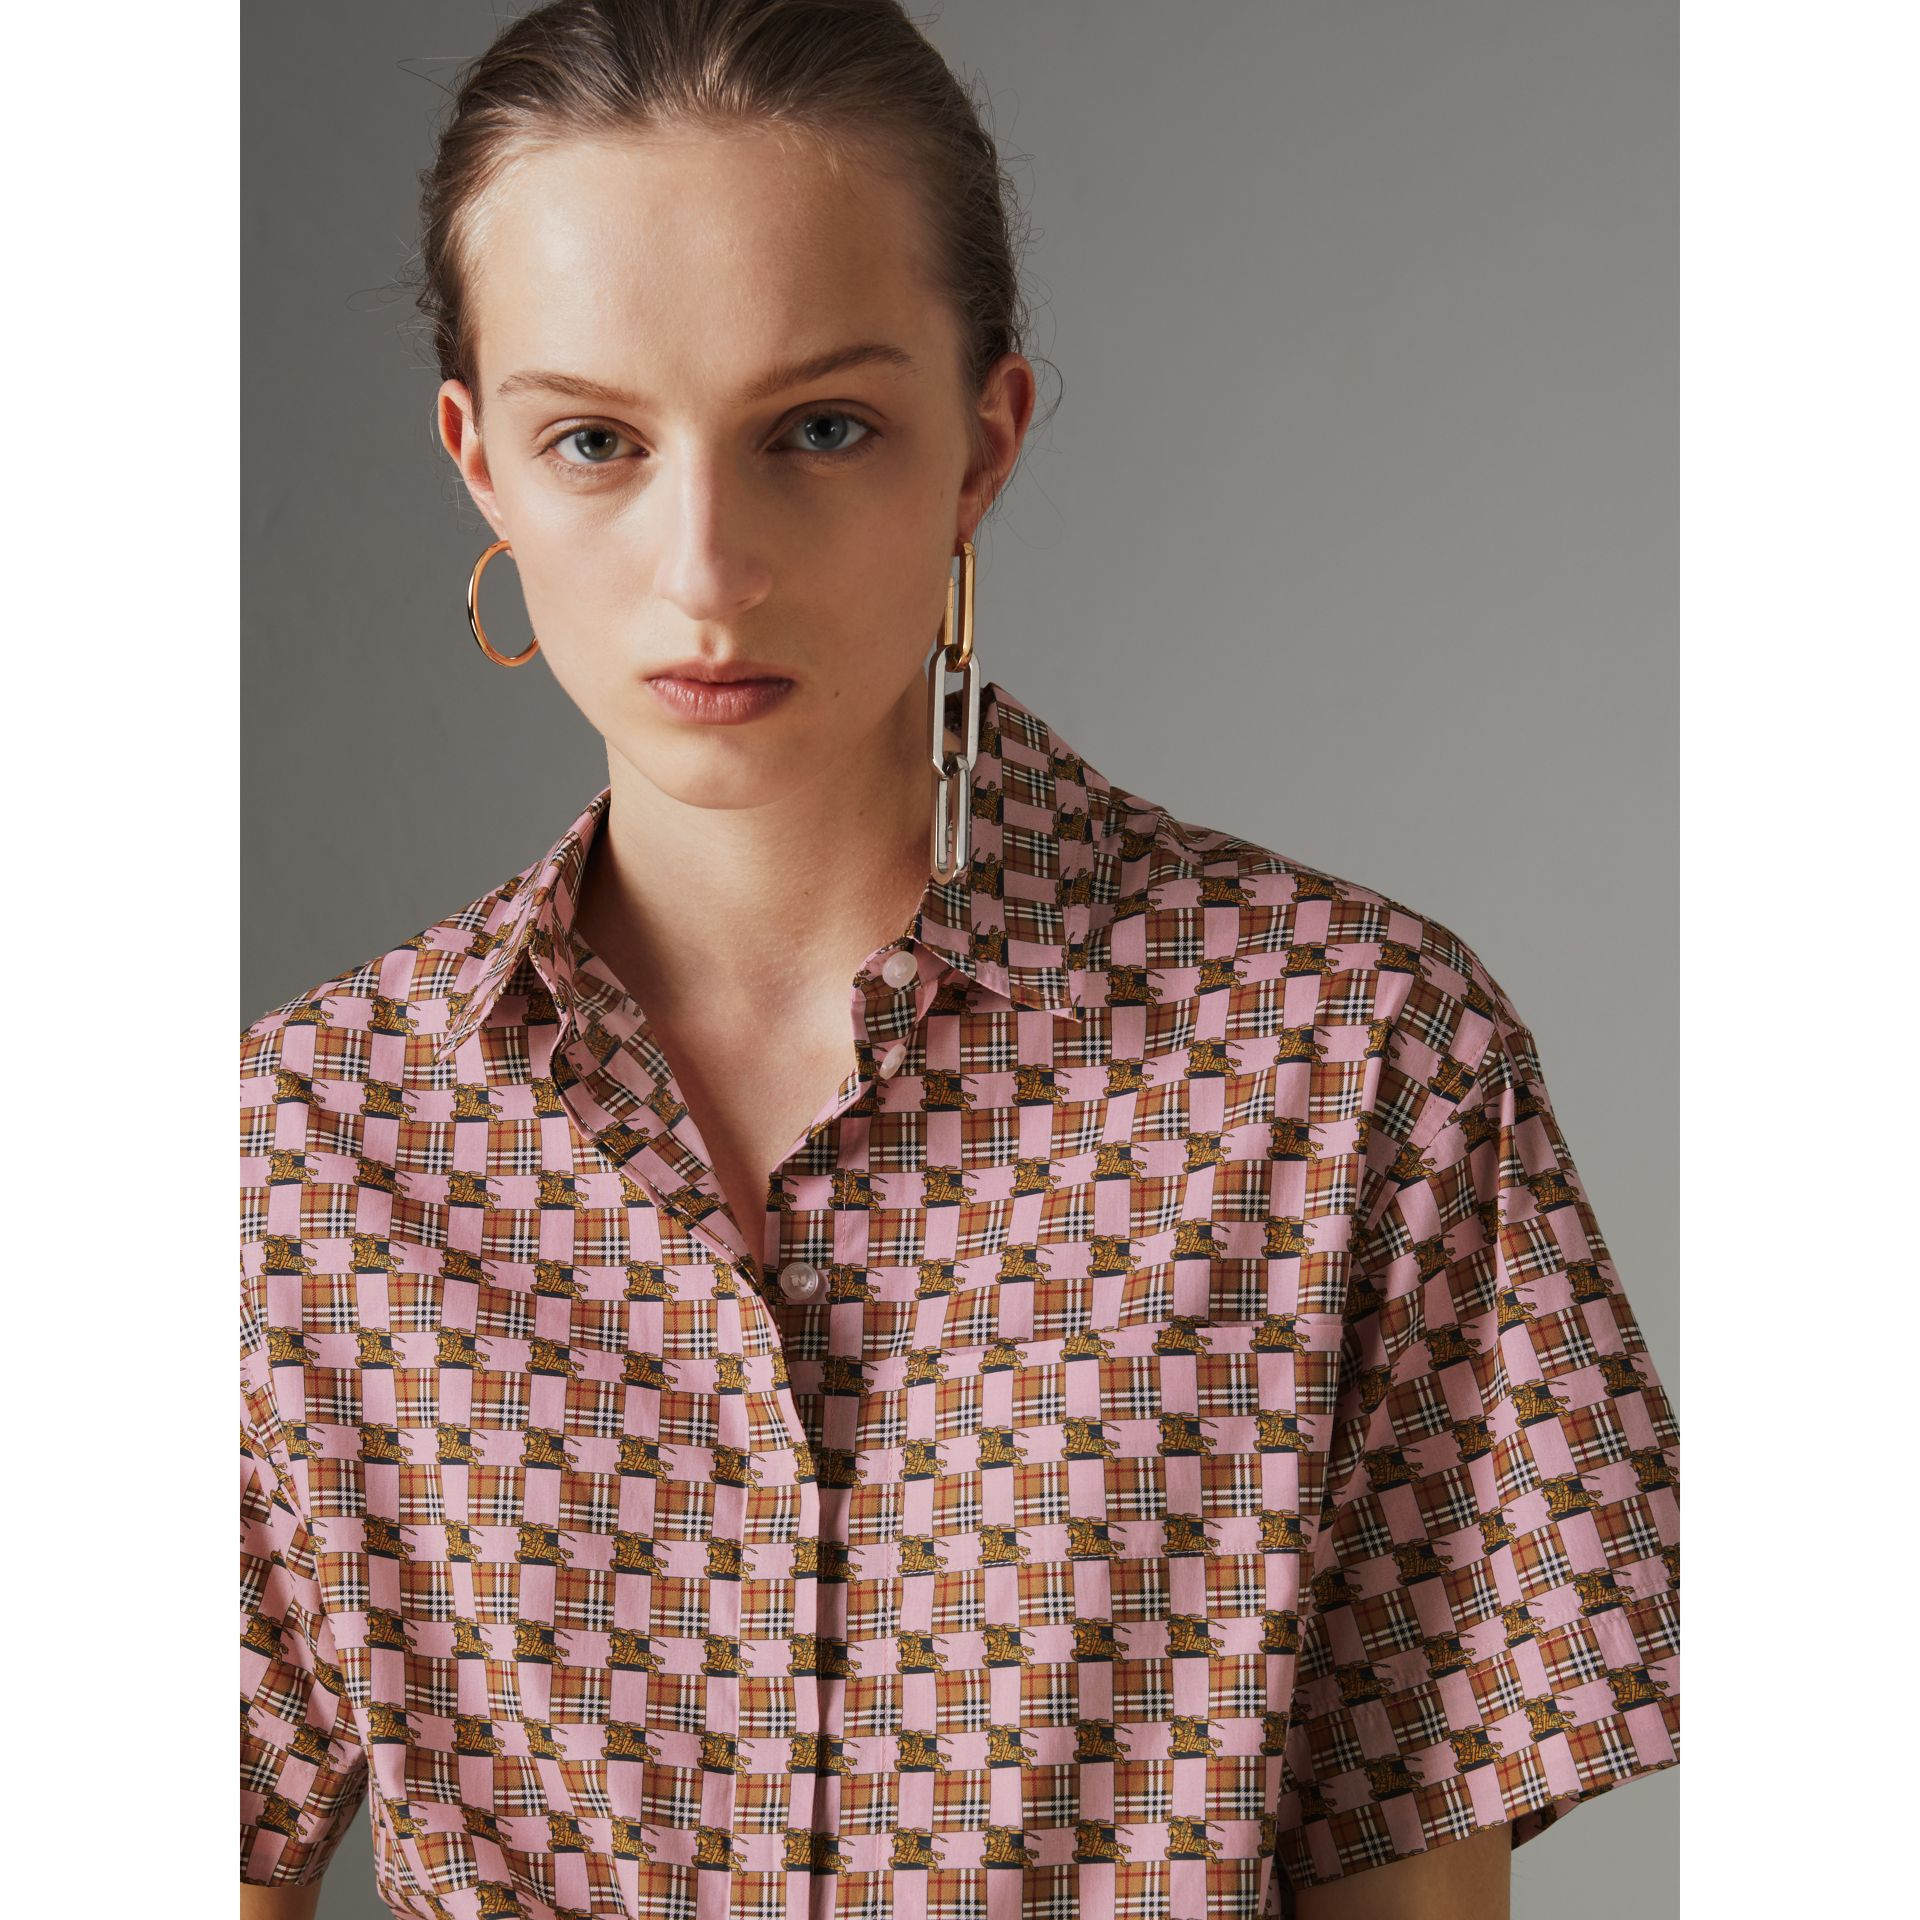 Short-sleeve Tiled Archive Print Cotton Shirt in Pink - Women | Burberry Australia - gallery image 1